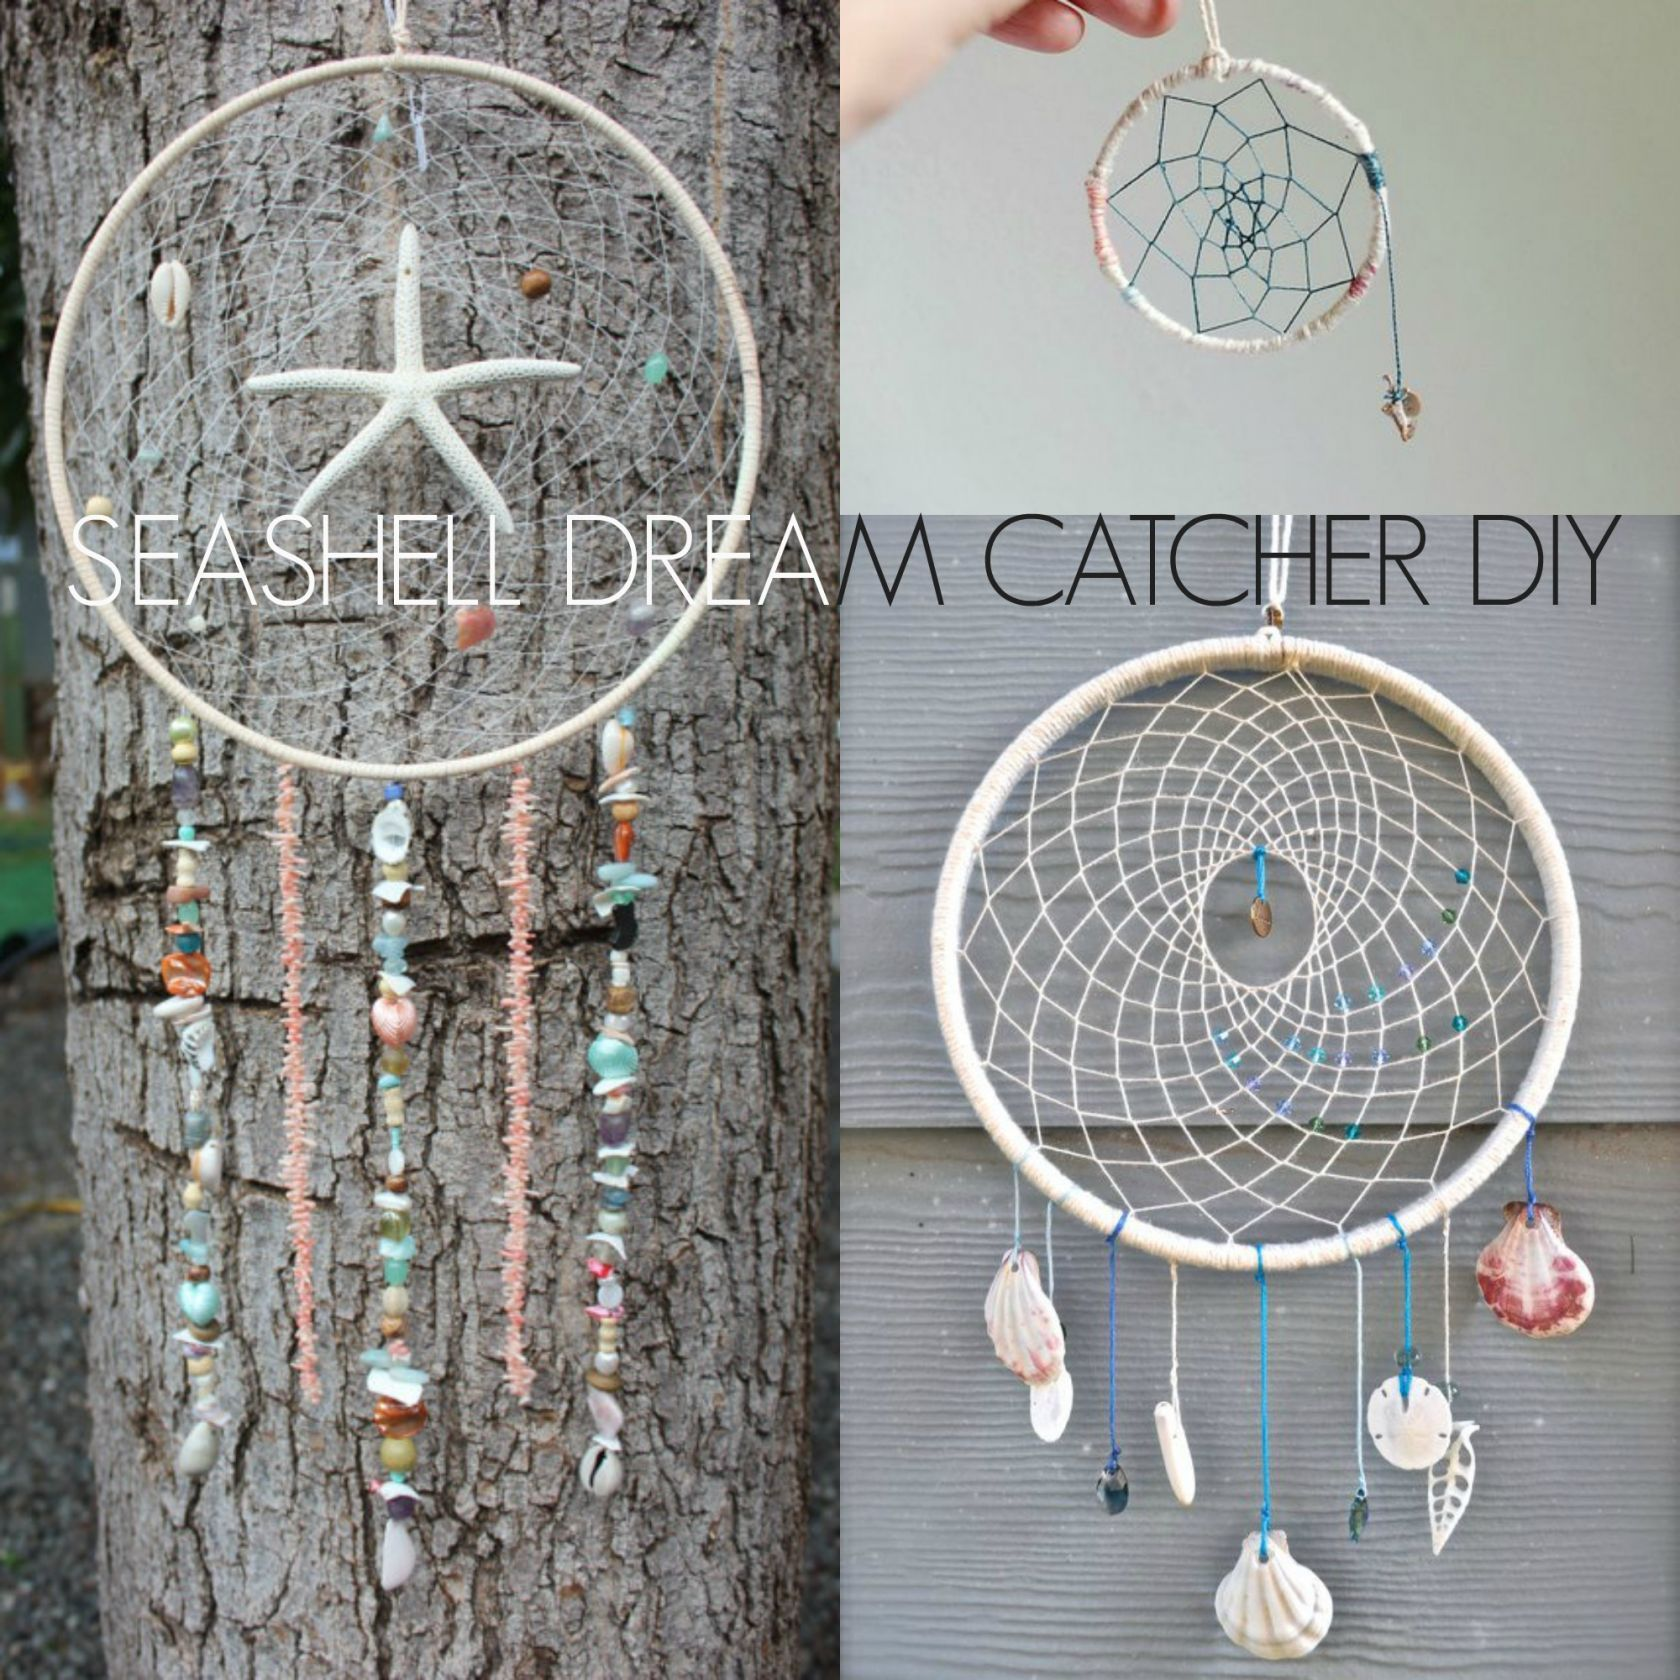 Seashell Dream Catcher DIY | Kid projects | Dream catcher